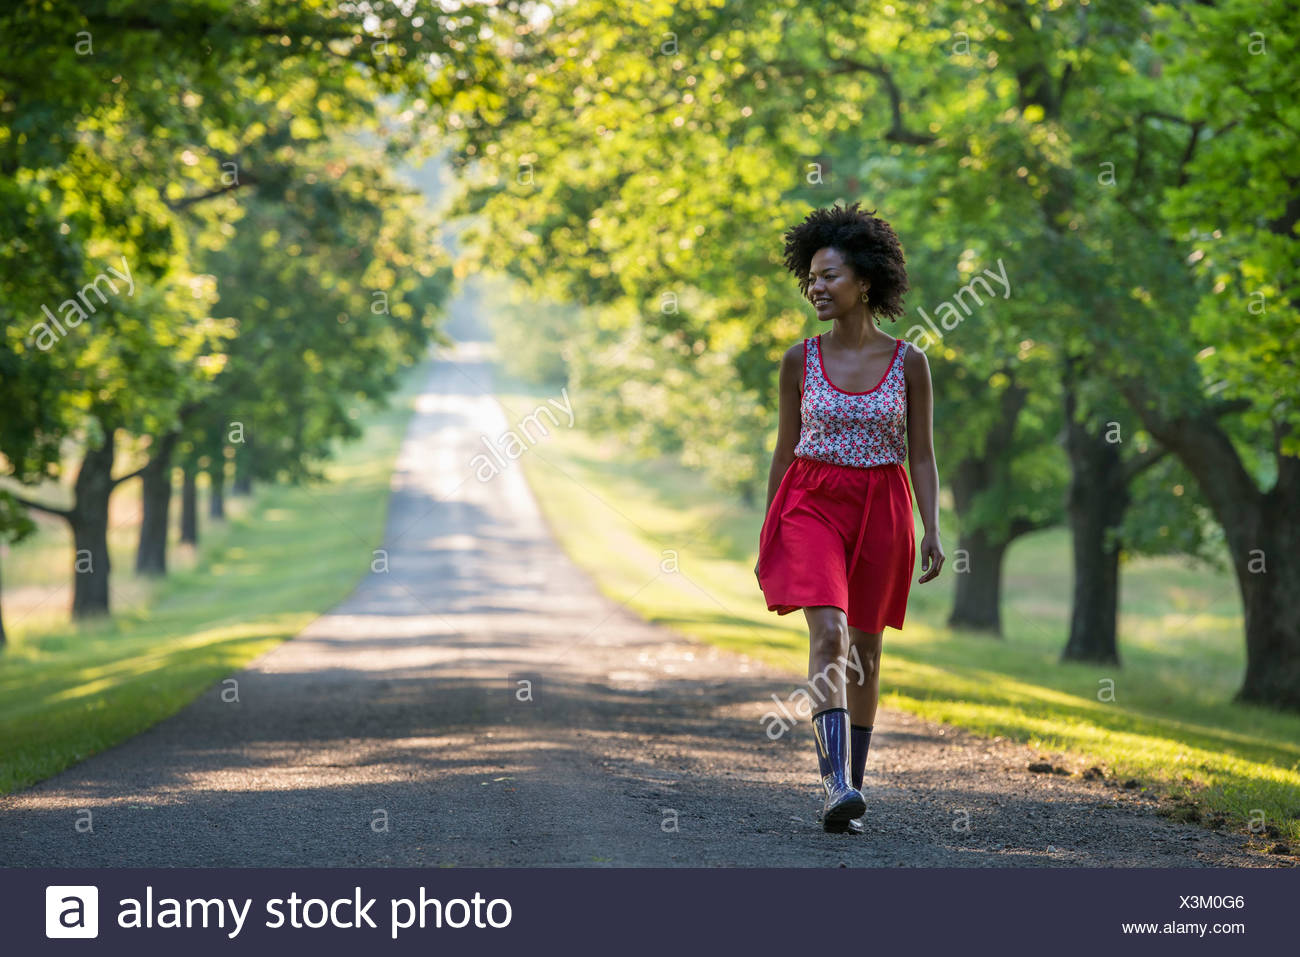 A woman walking down a tree lined path. - Stock Image